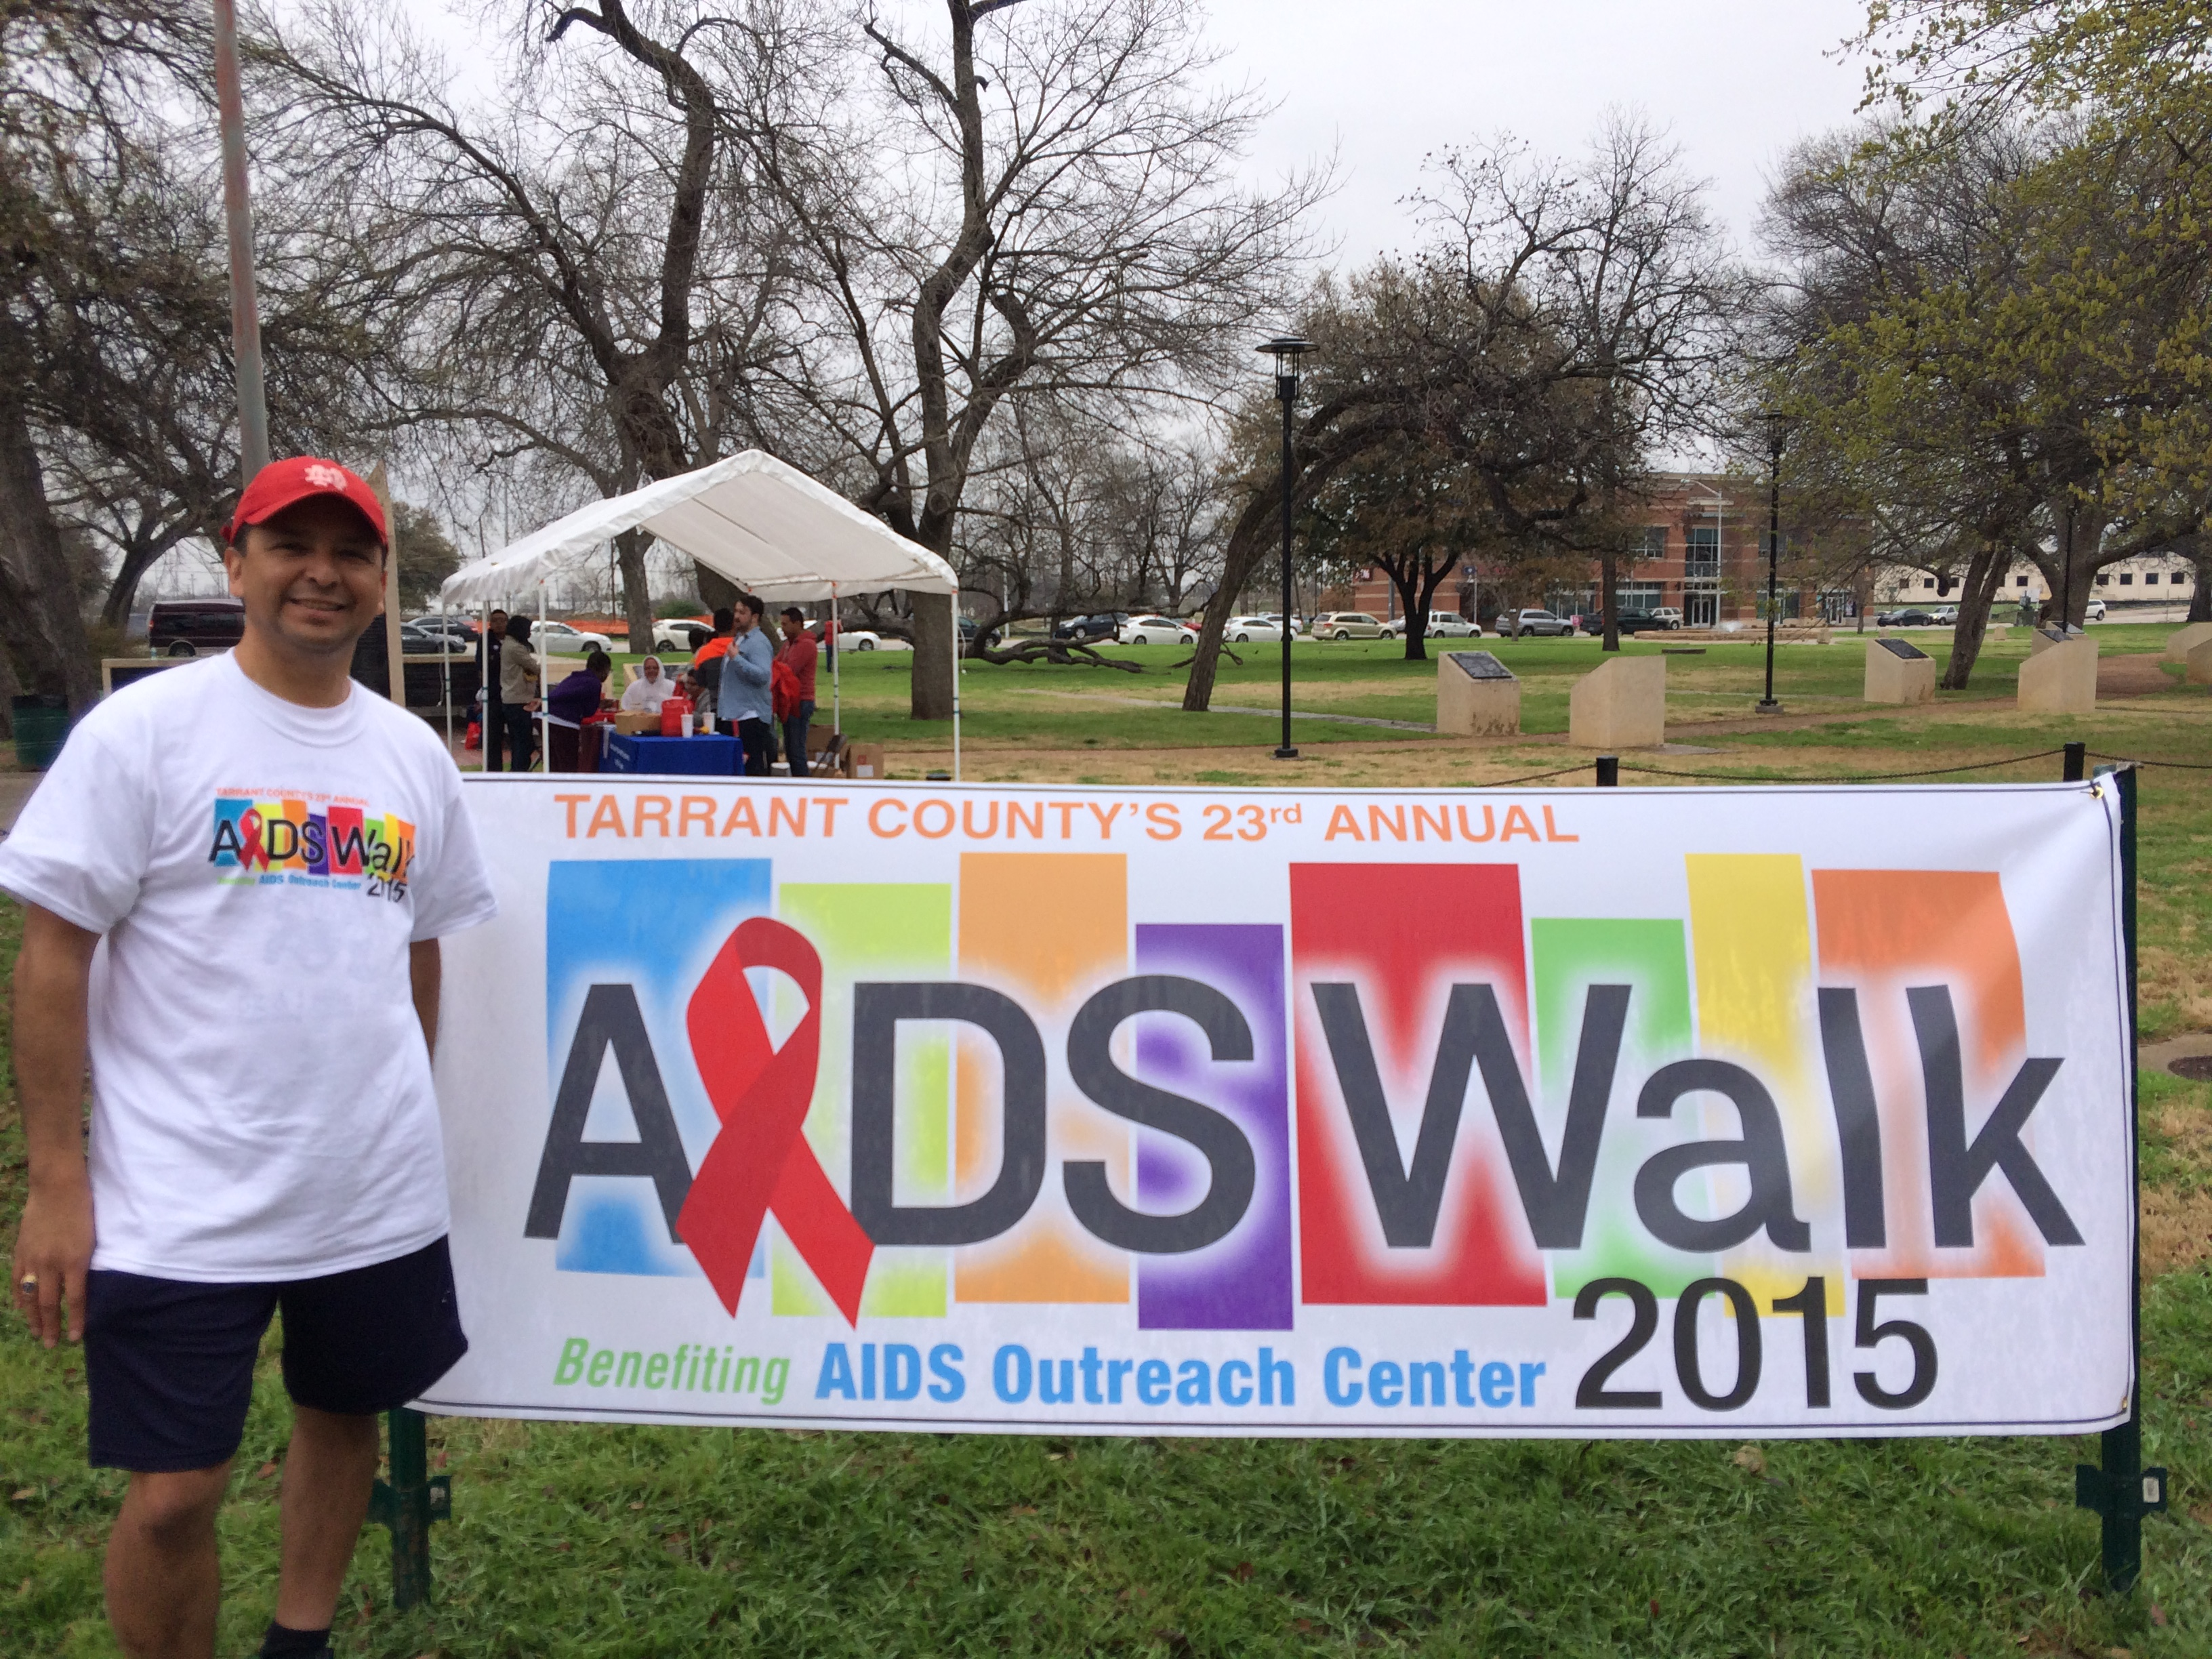 2015 Walk Event (formerly known as AIDS Walk)